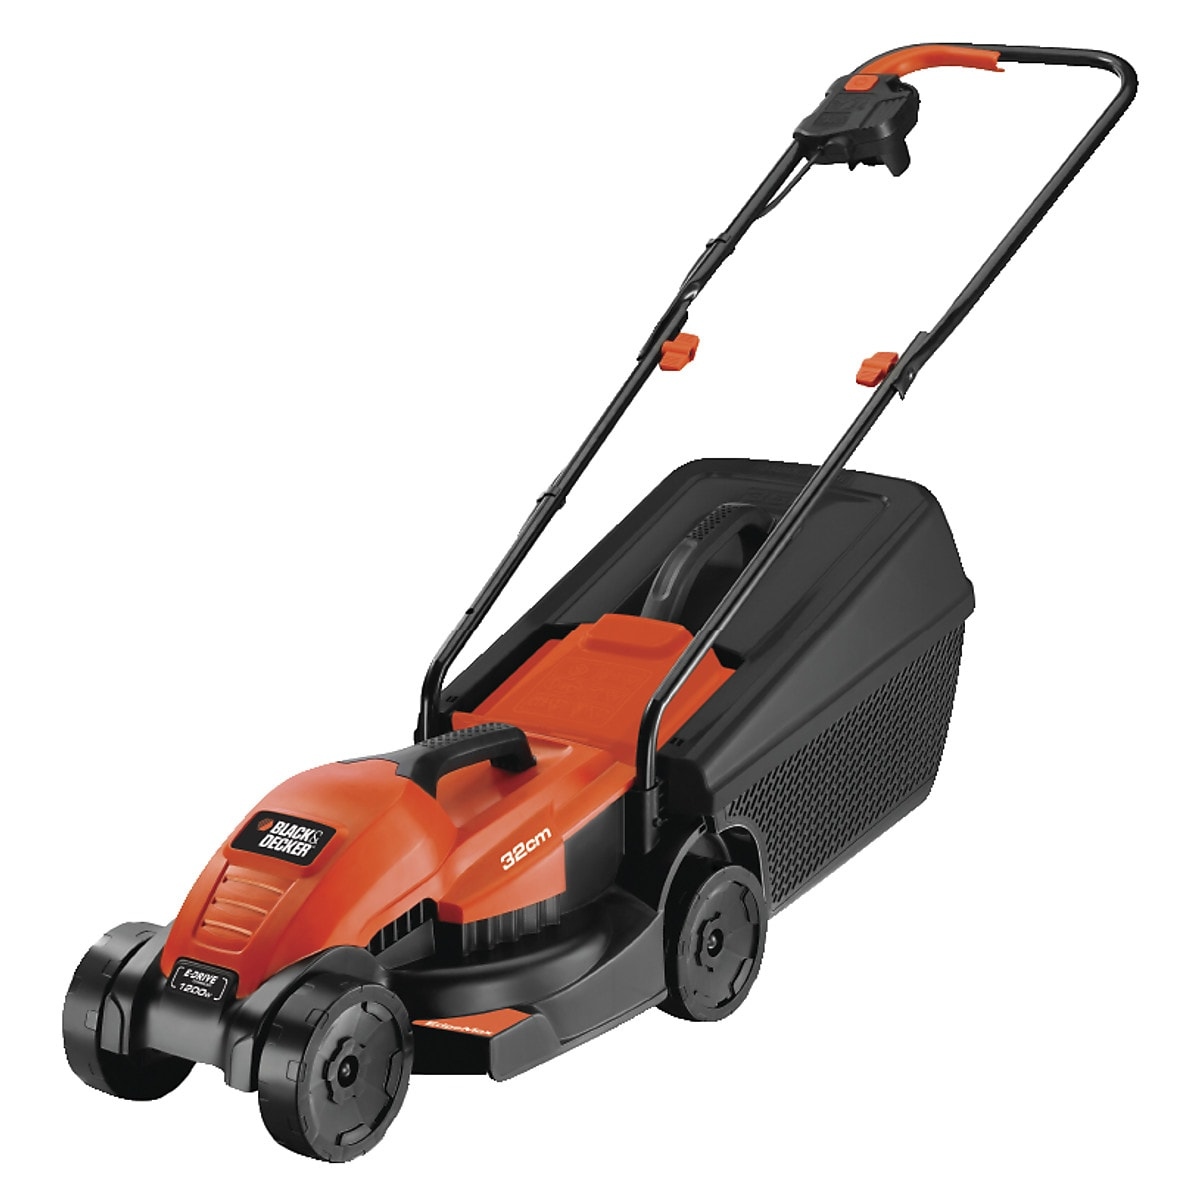 Black & Decker EMAX32 Lawnmower